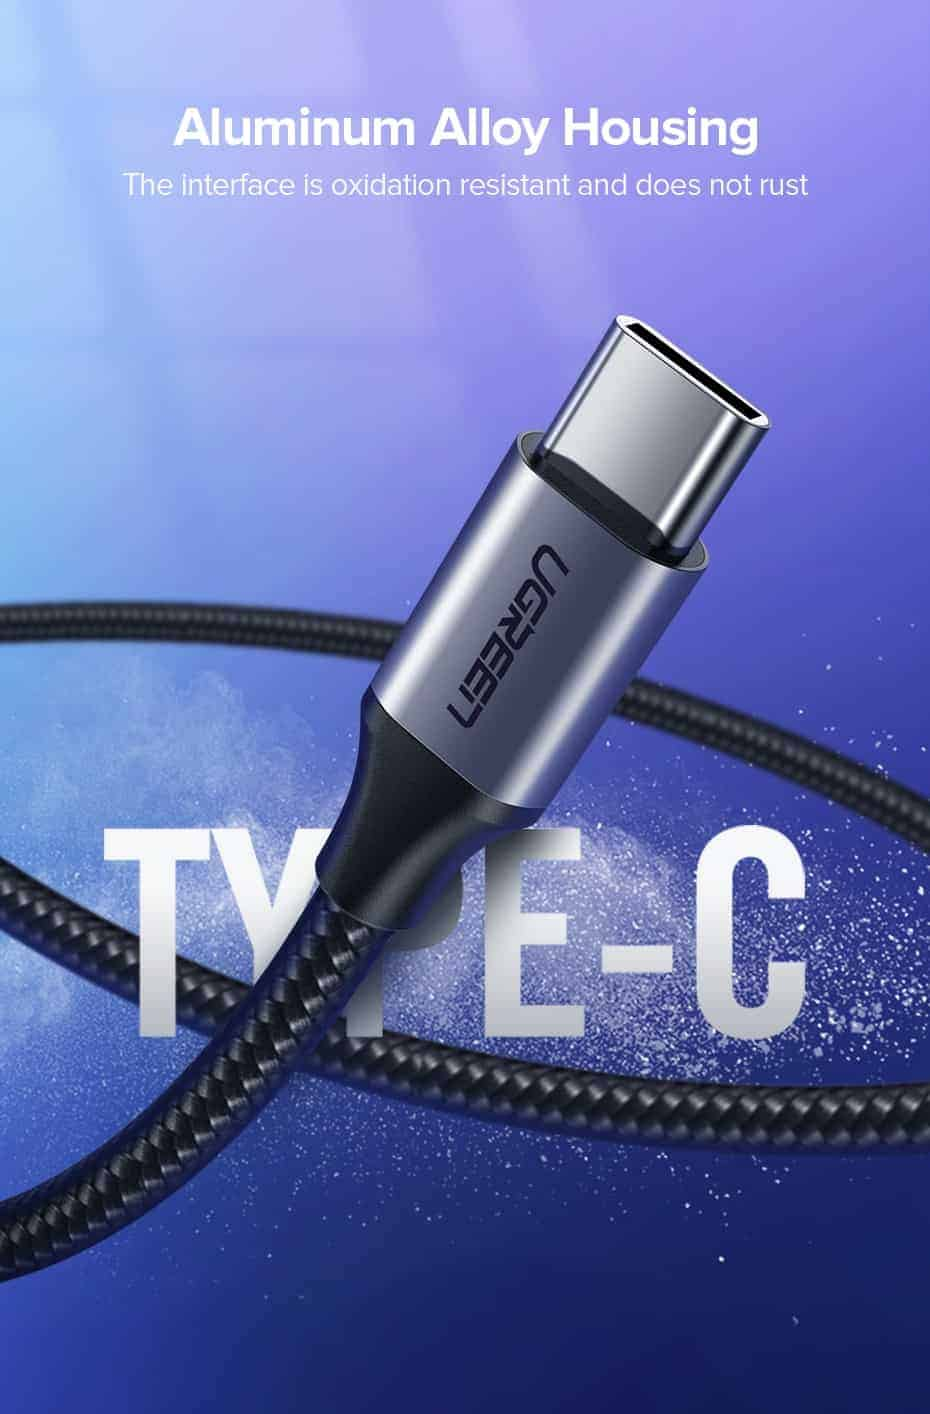 สายชาร์จ Type C UPGRADE 3A Fast CHARGING FOR DEVICES USB-C CONNECTOR-aluminum alloy housing